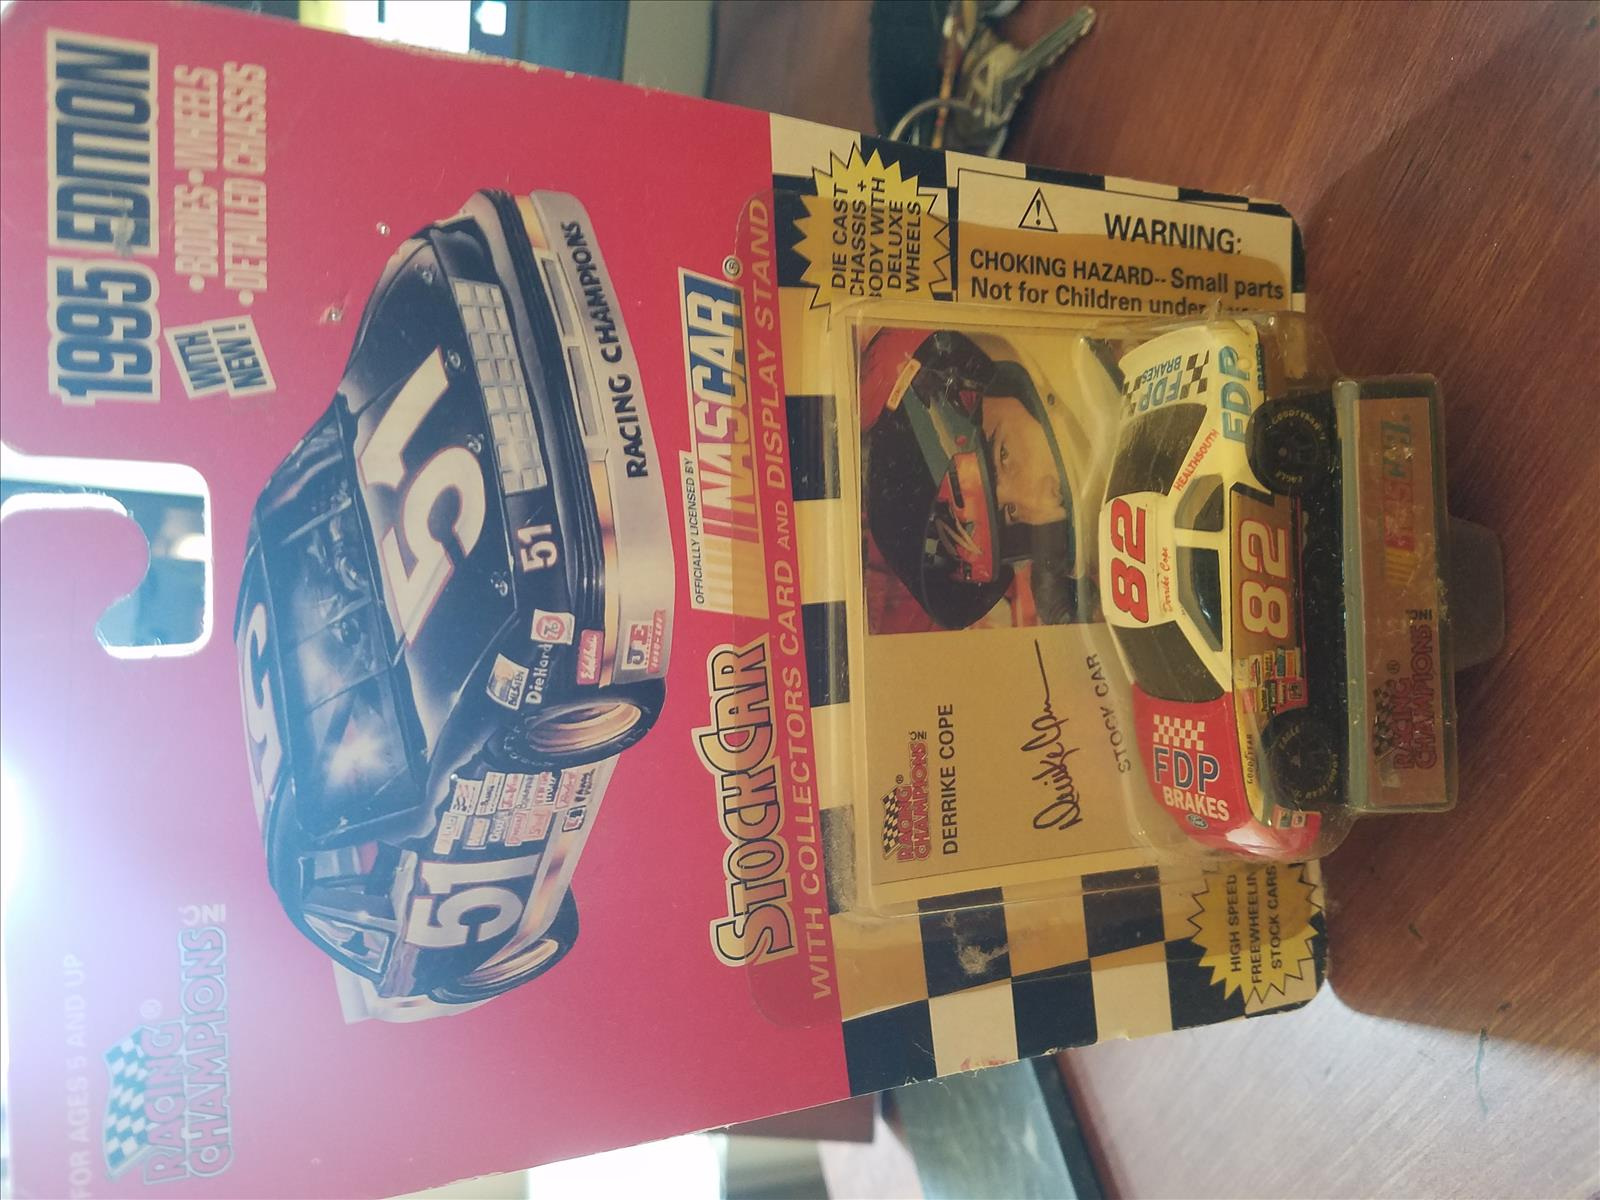 1995 Derrike Cope NASCAR Diecast 82 FDP Brakes CWC 1:64 Racing Champions 1995 Edition 1